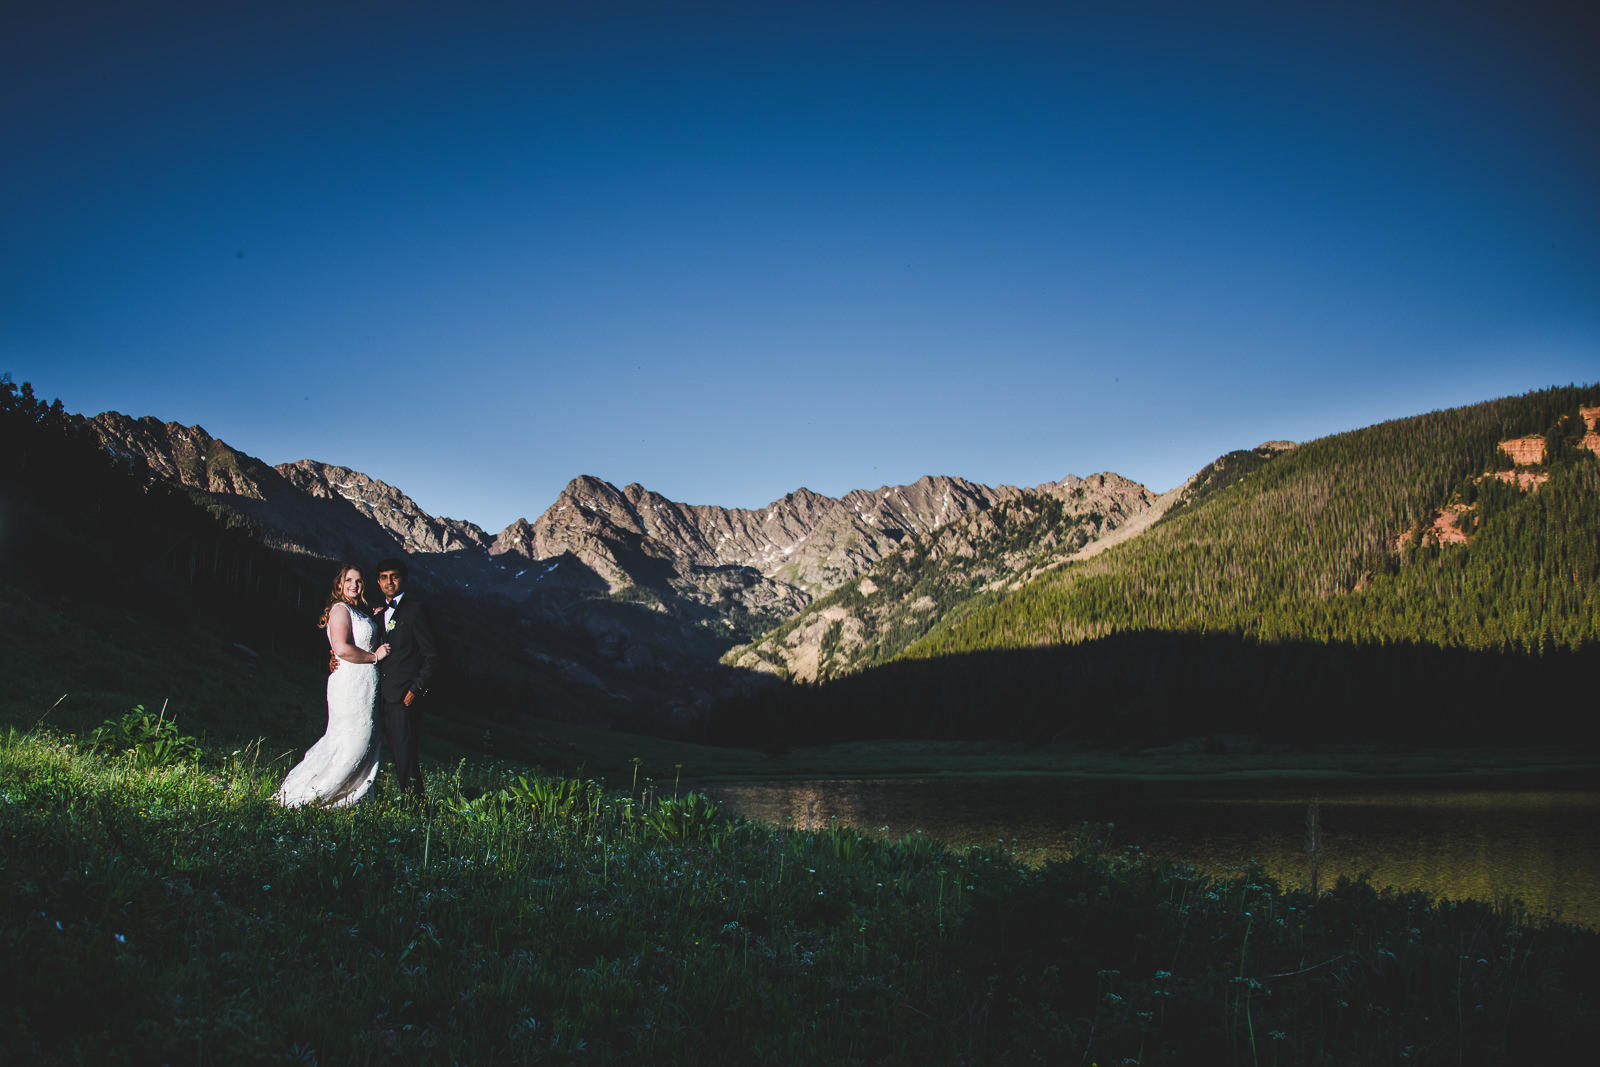 Bride in white dress and groom in tux standing in mountain meadow